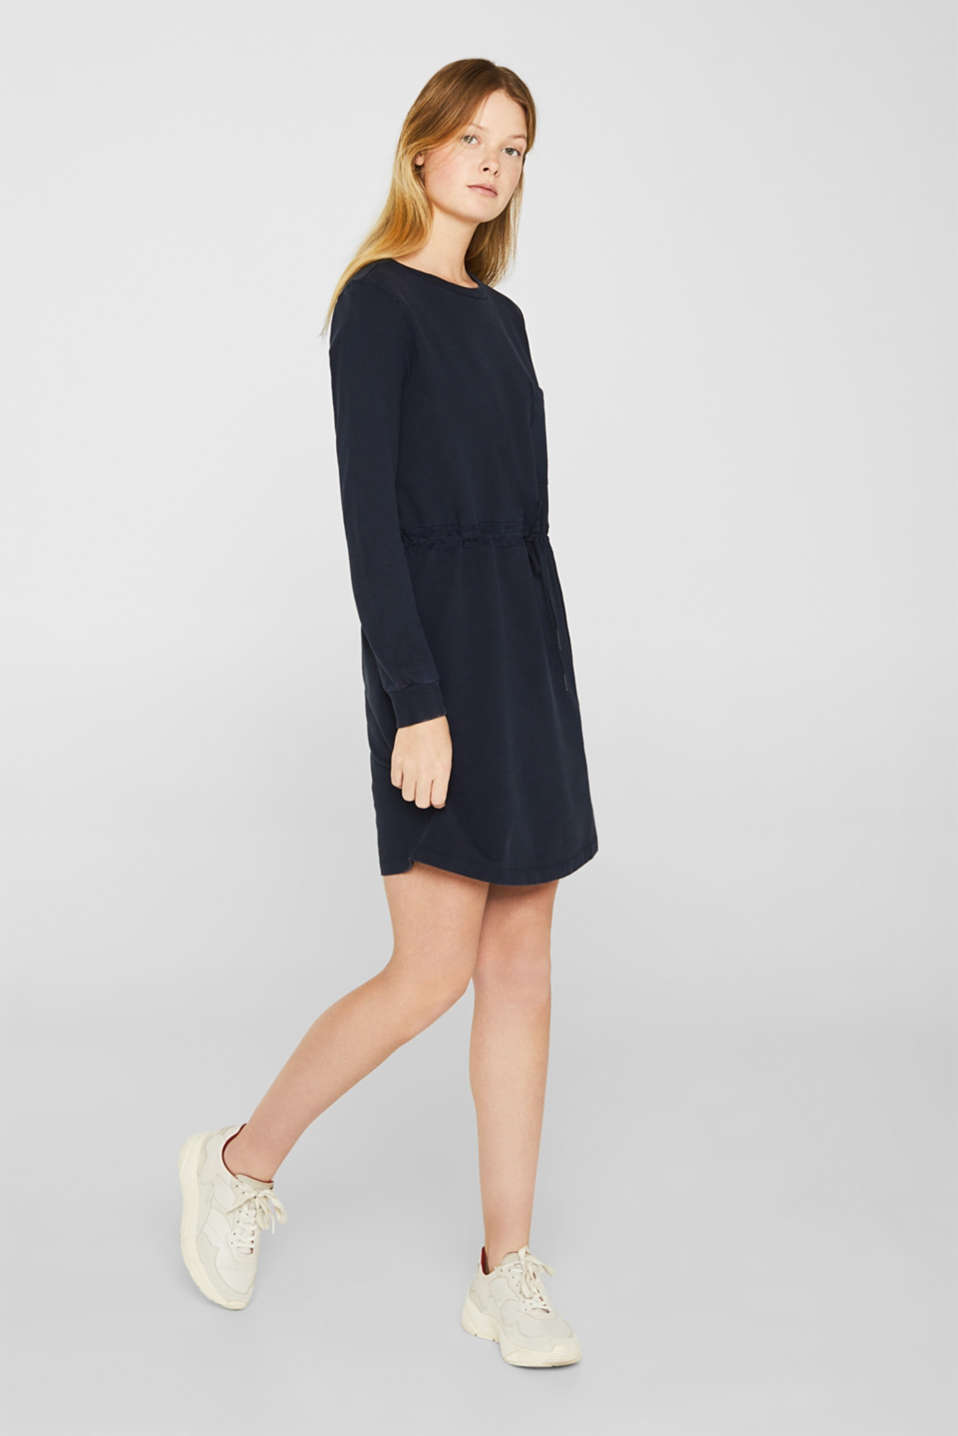 Sweatshirt dress with a drawstring, 100% cotton, NAVY, detail image number 1